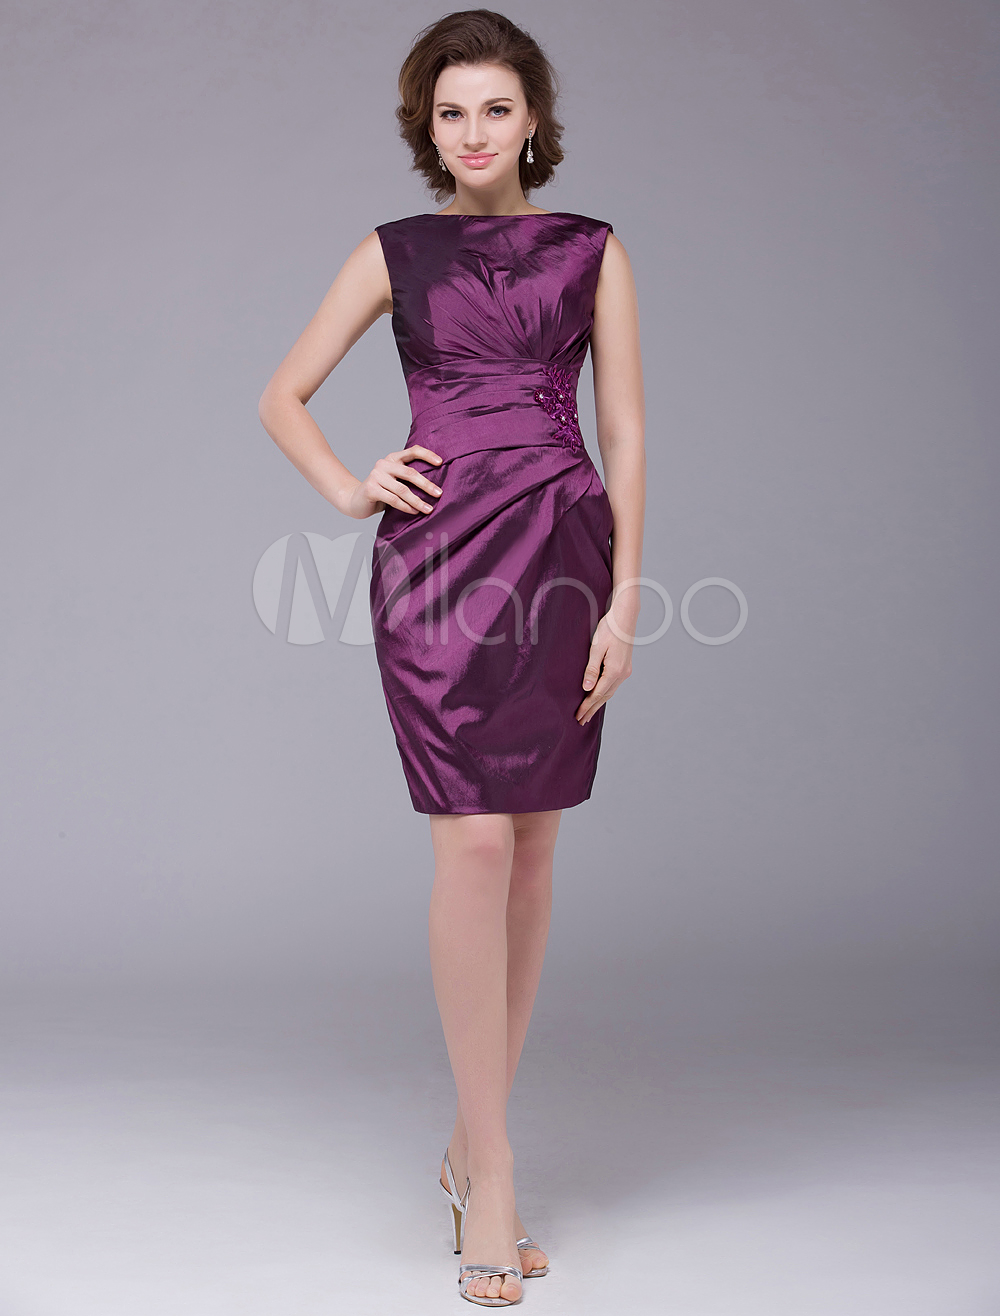 Buy Grape Sheath Bateau Neck Pleated Taffeta Mother of the Bride Dress with Off-The-Shoulder Short Sleeves Wedding Guest Dress for $100.79 in Milanoo store